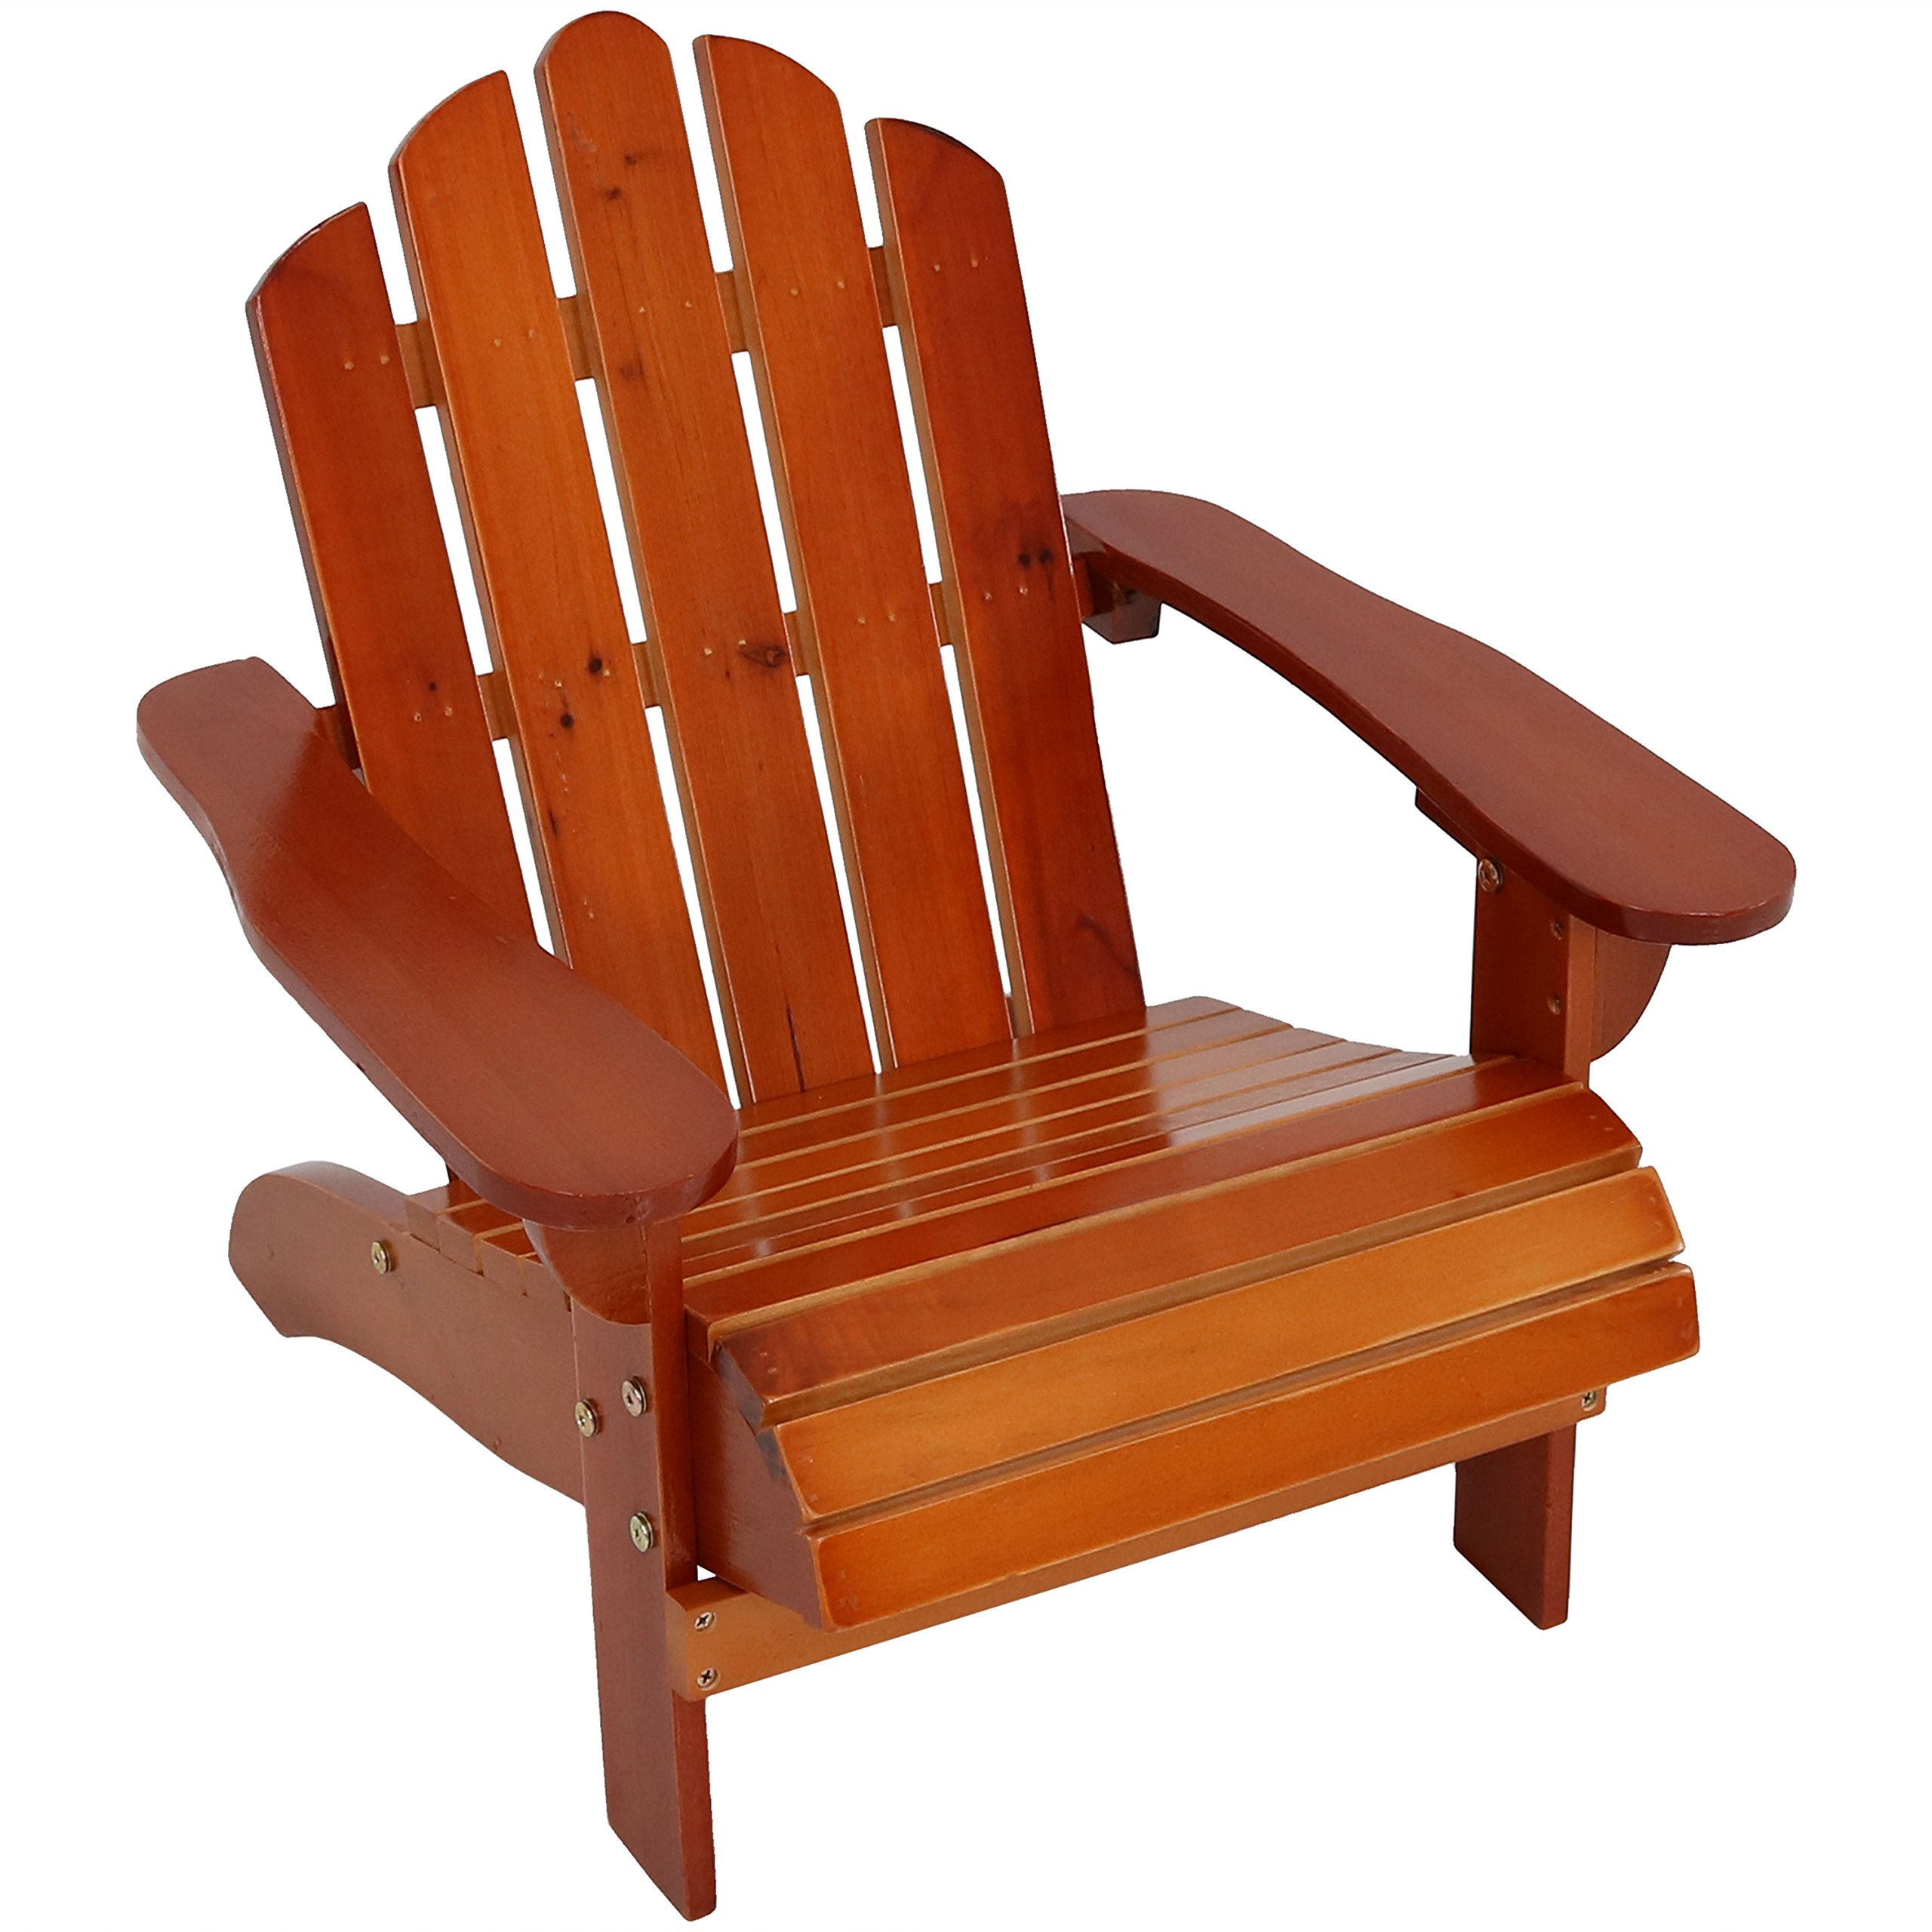 Sunnydaze Toddler Classic Wooden Adirondack Chair with Non-Toxic Paint Finish, Fits Most Children Under 3 Feet Tall, Brown